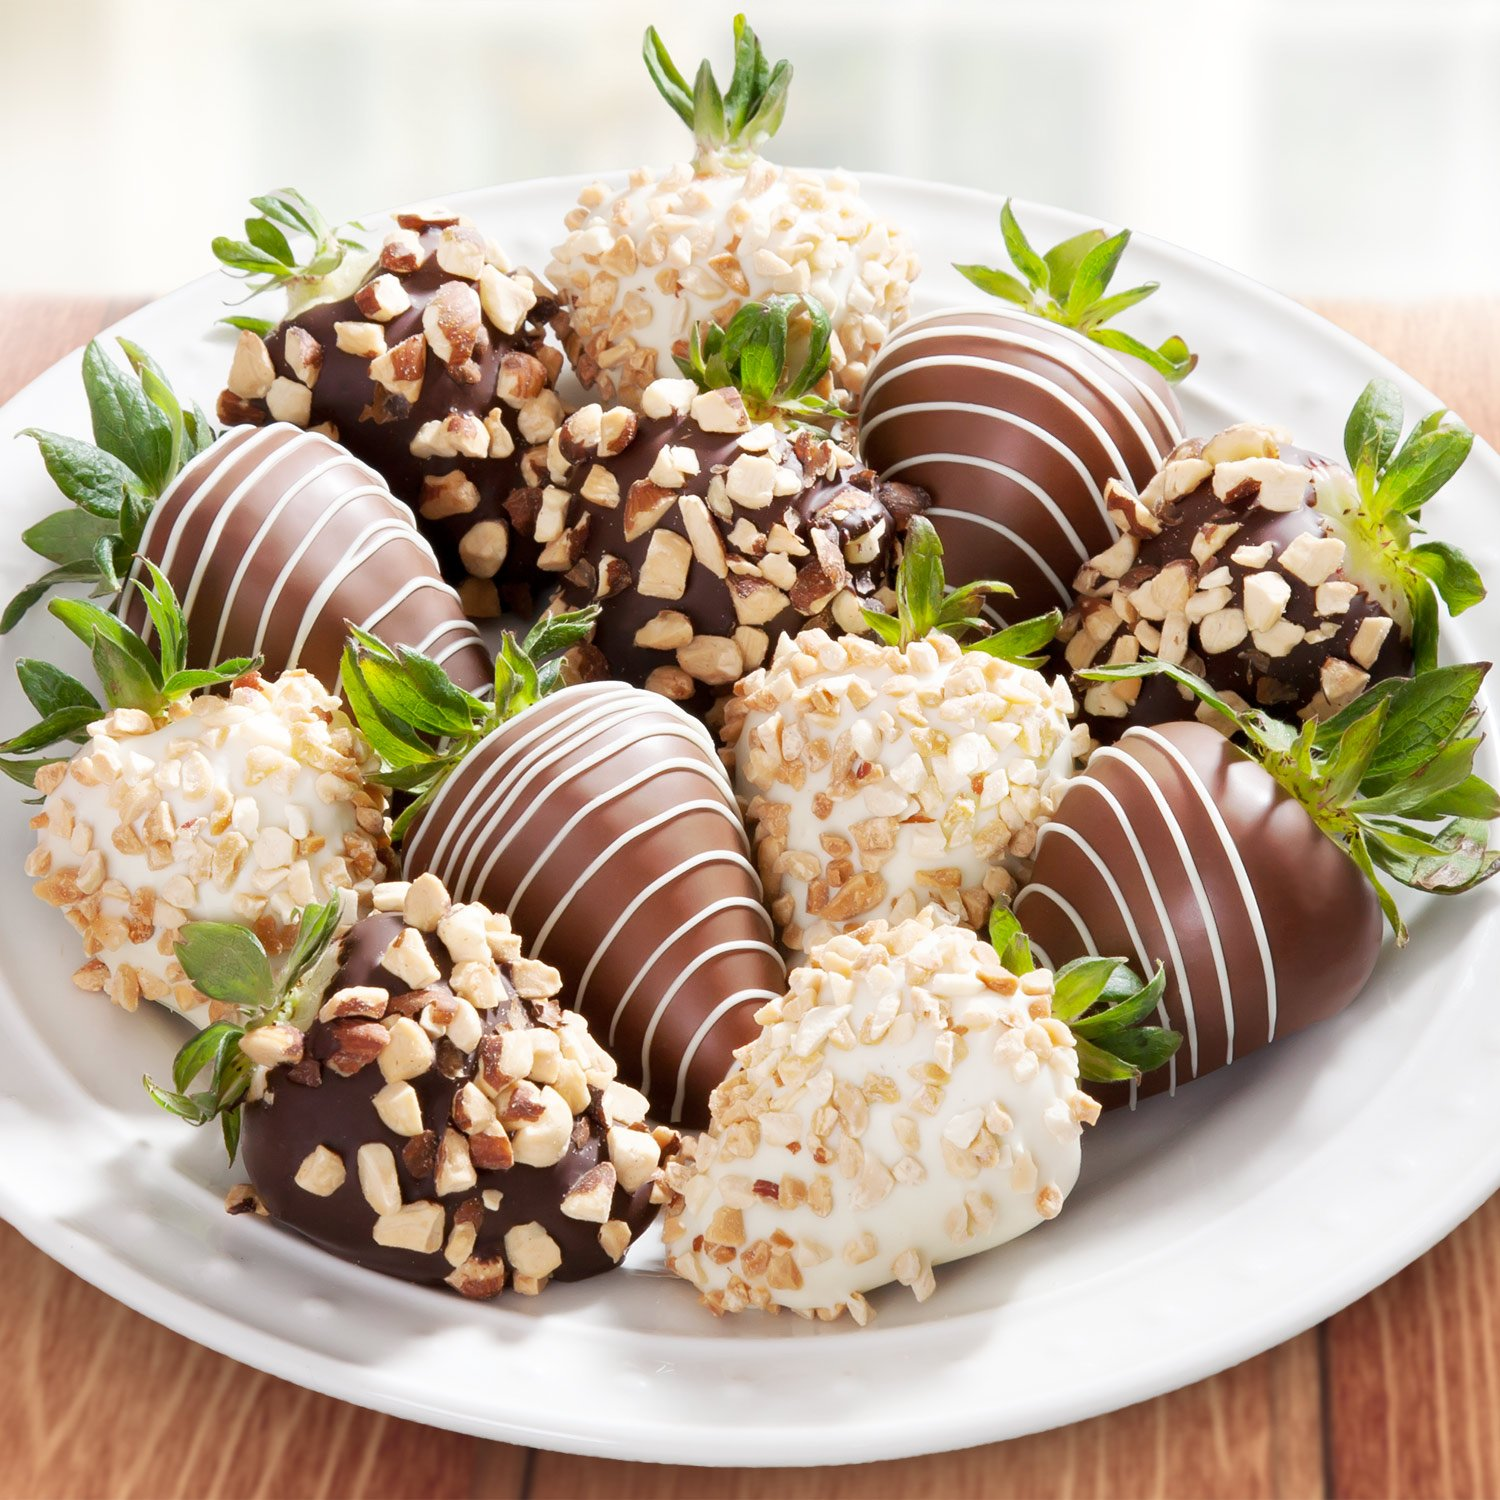 Amazon.com : 12 Nuts About Chocolate Covered Strawberries ...